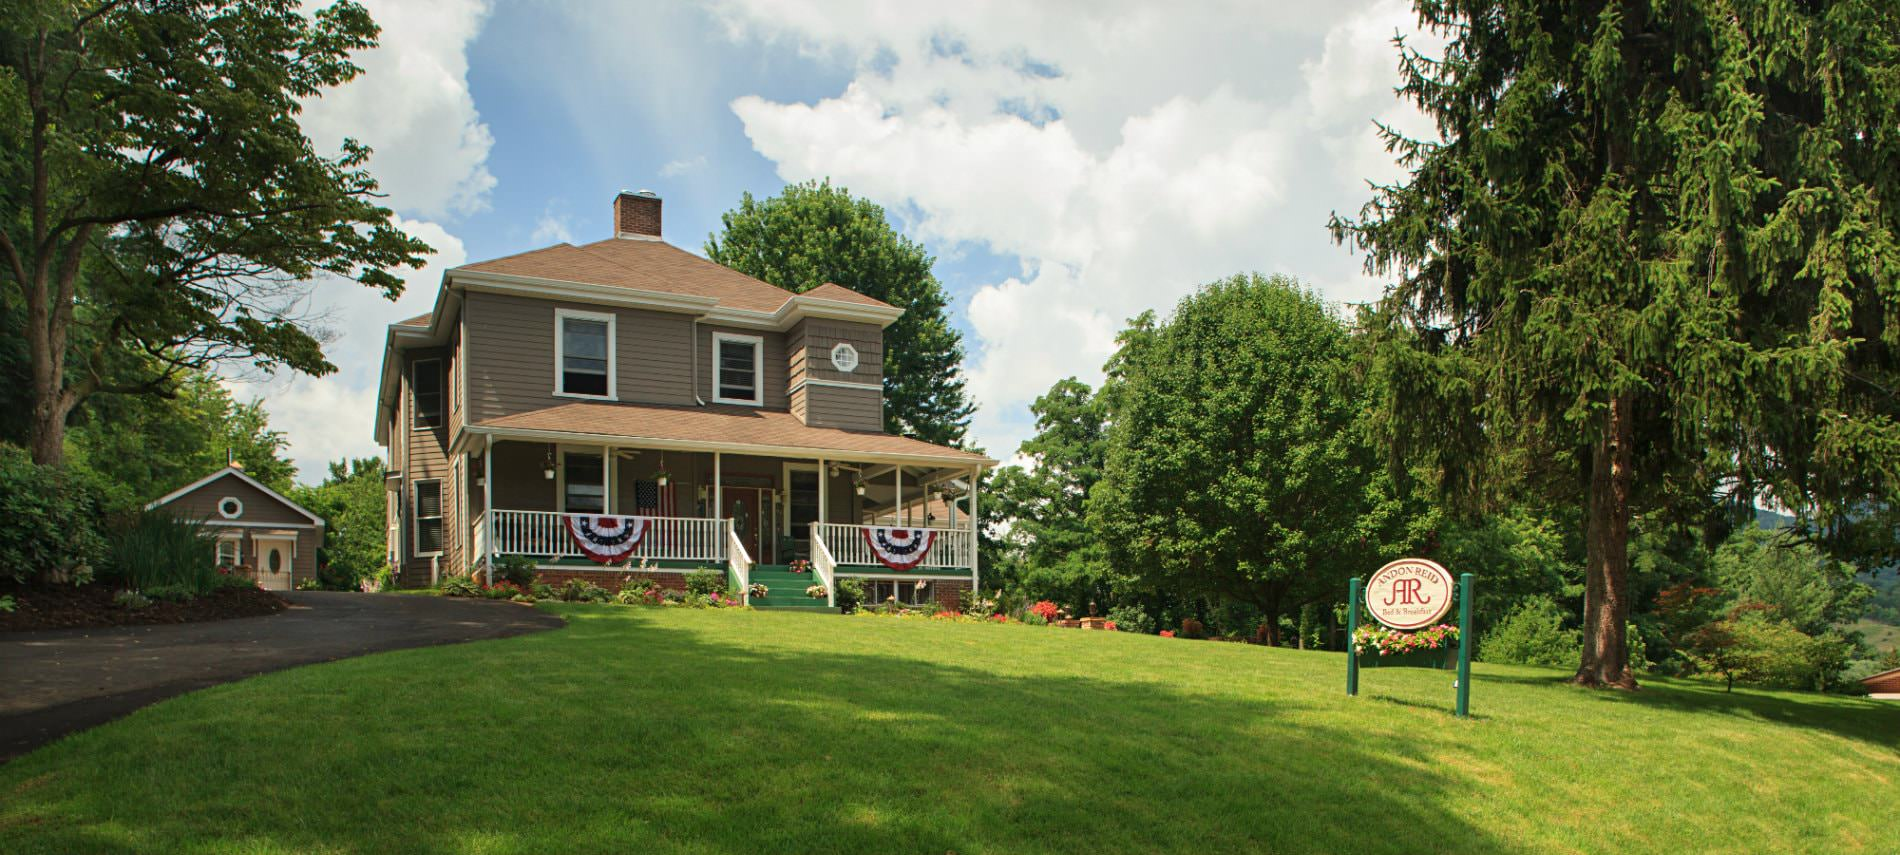 Brown sided two story home with white trim, hip roof, surrounded by green grass, lush green trees and blue skies